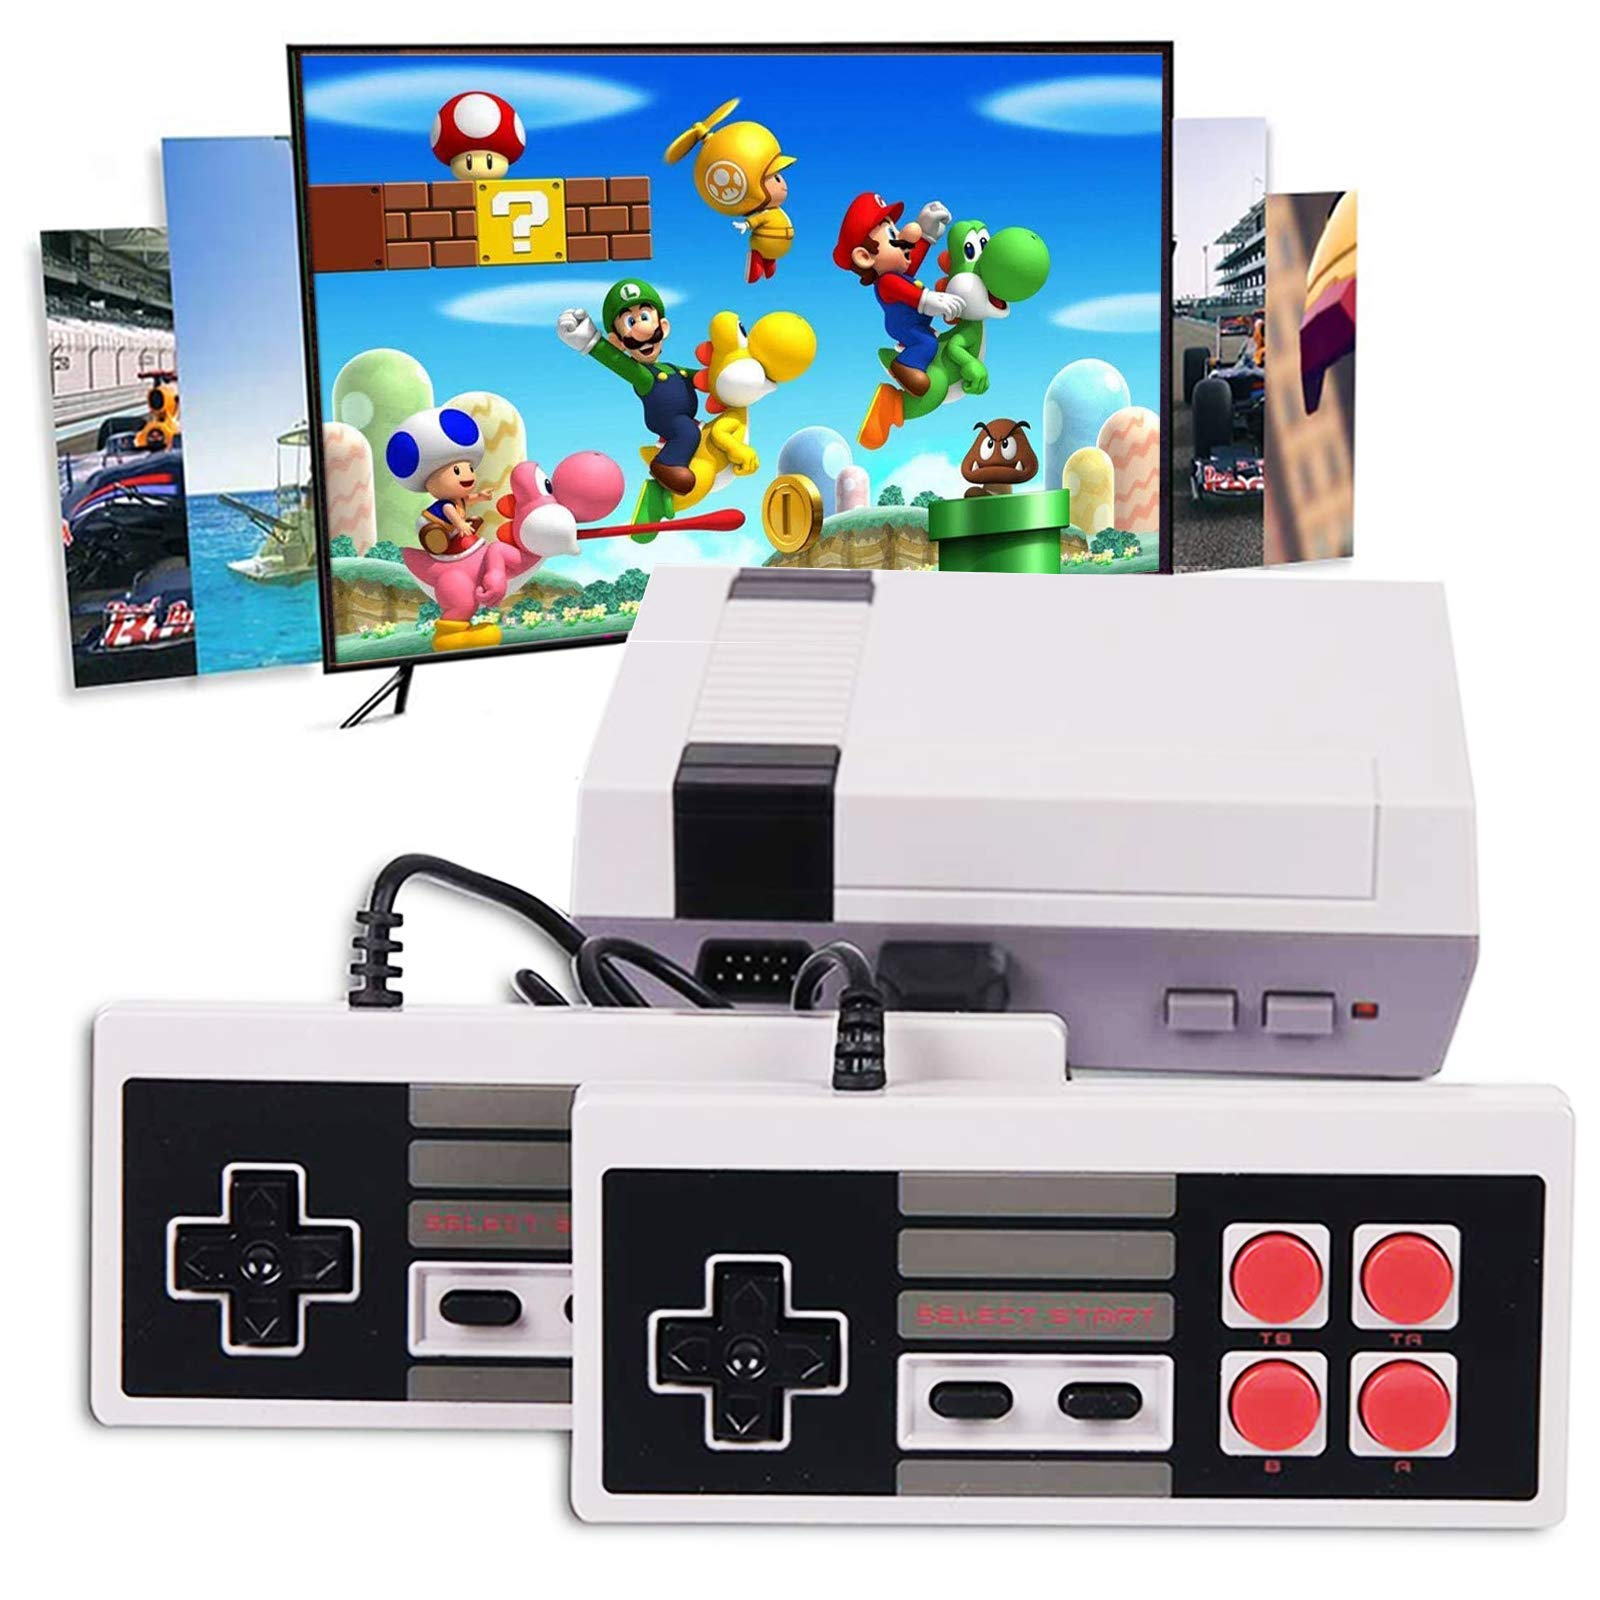 Classic Handheld Game Console, Retro Gaming Console Built-in 600 HD Game in TF Card and Classic NES Dual Gamepad Controller HDMI Output Gaming Player